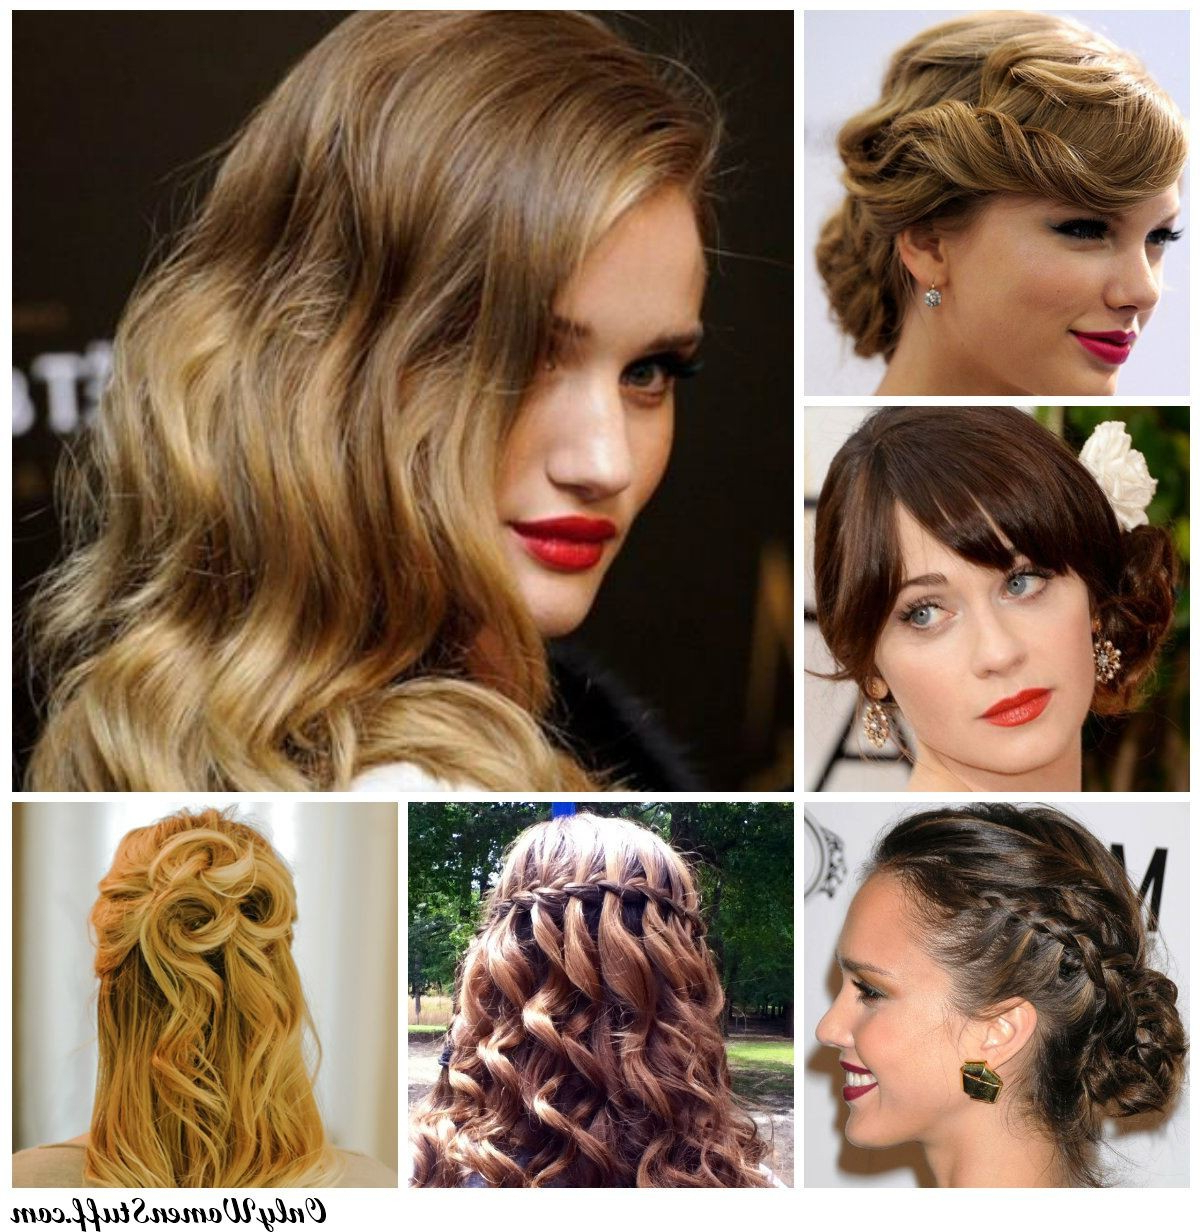 Easy Formal Hairstyles For Medium Hair Innovative Prom Hairstyles Within Most Current Cute Medium Hairstyles For Prom (View 10 of 20)